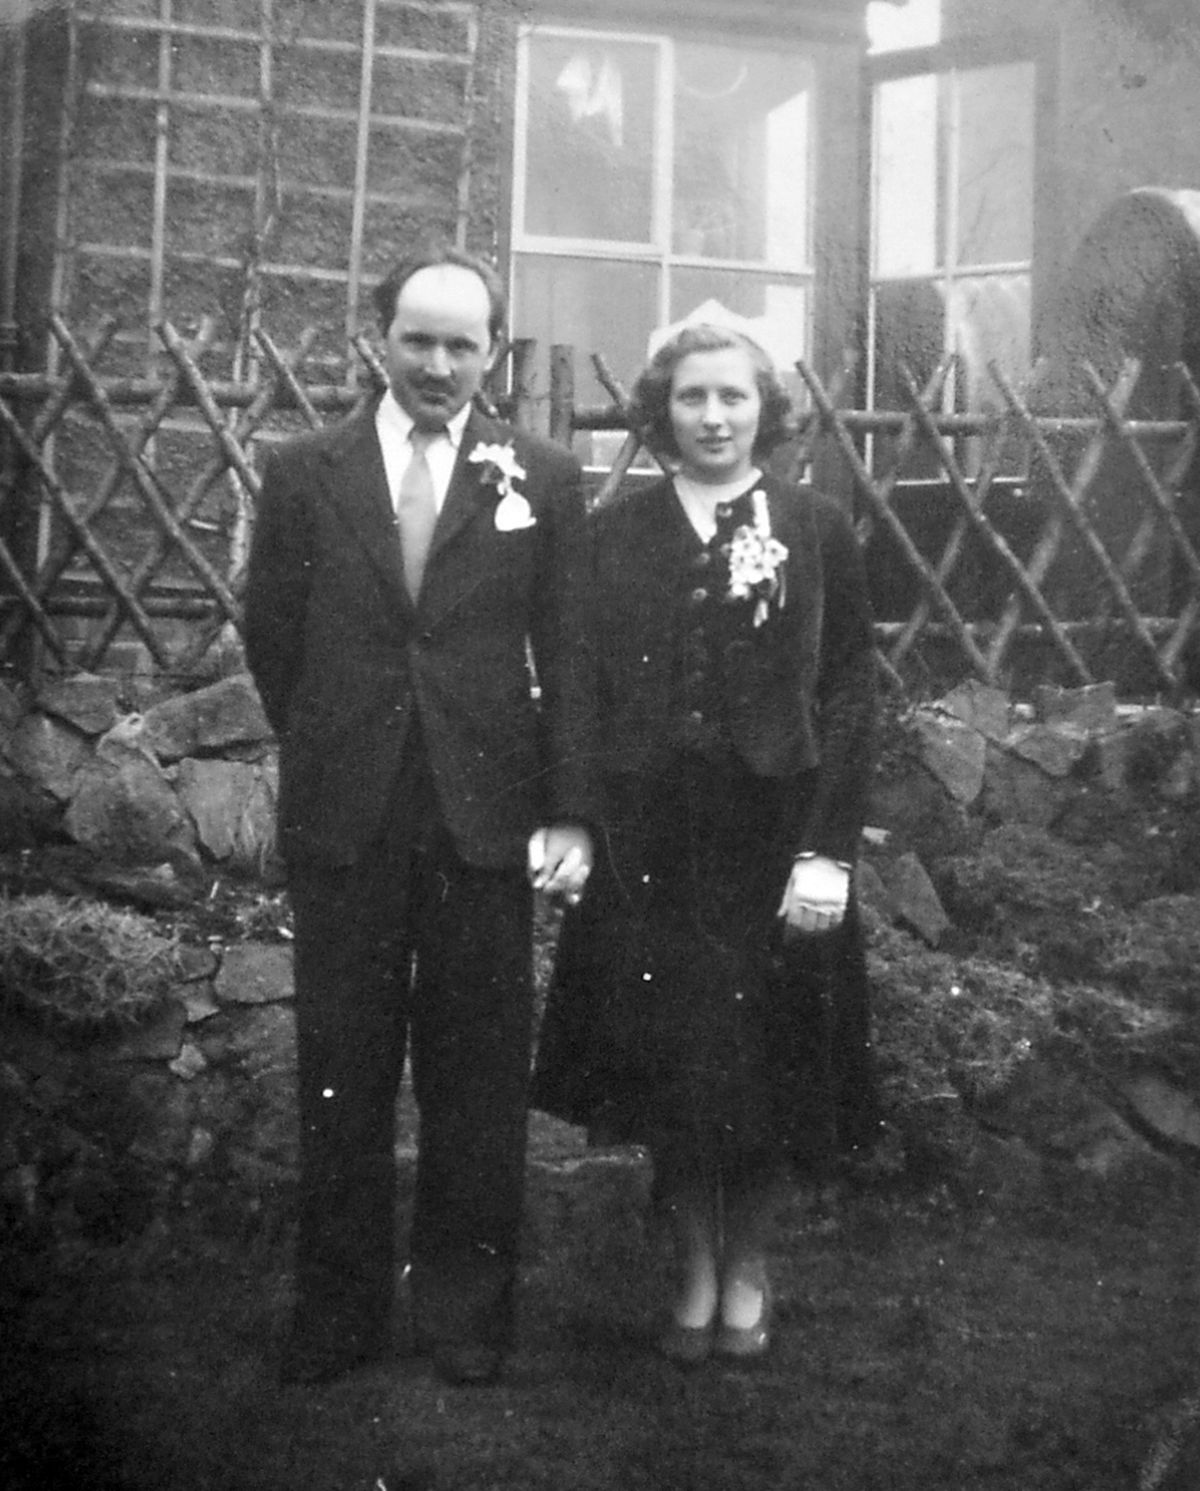 Jean and John on their wedding day in Tettenhall in 1952.